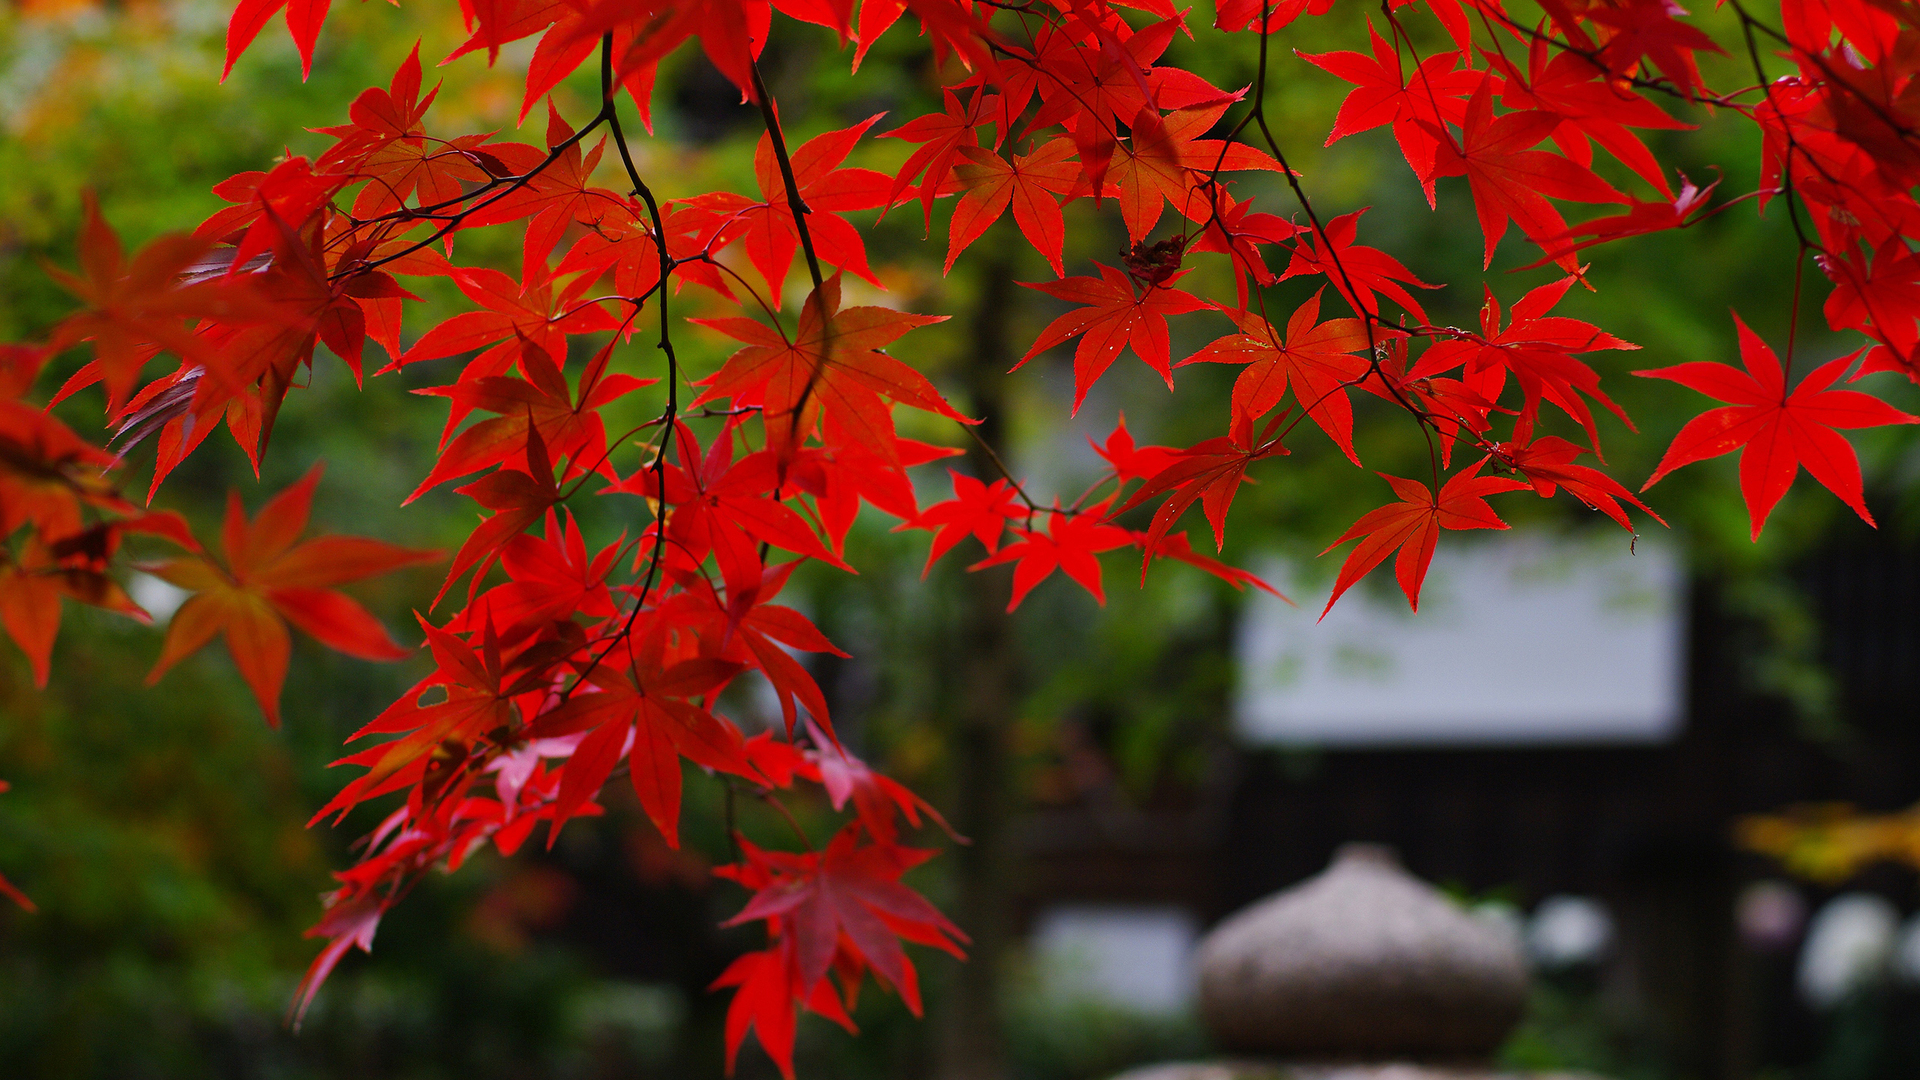 Beautiful Red Leaves Photo Nature Wallpaper HD Free.